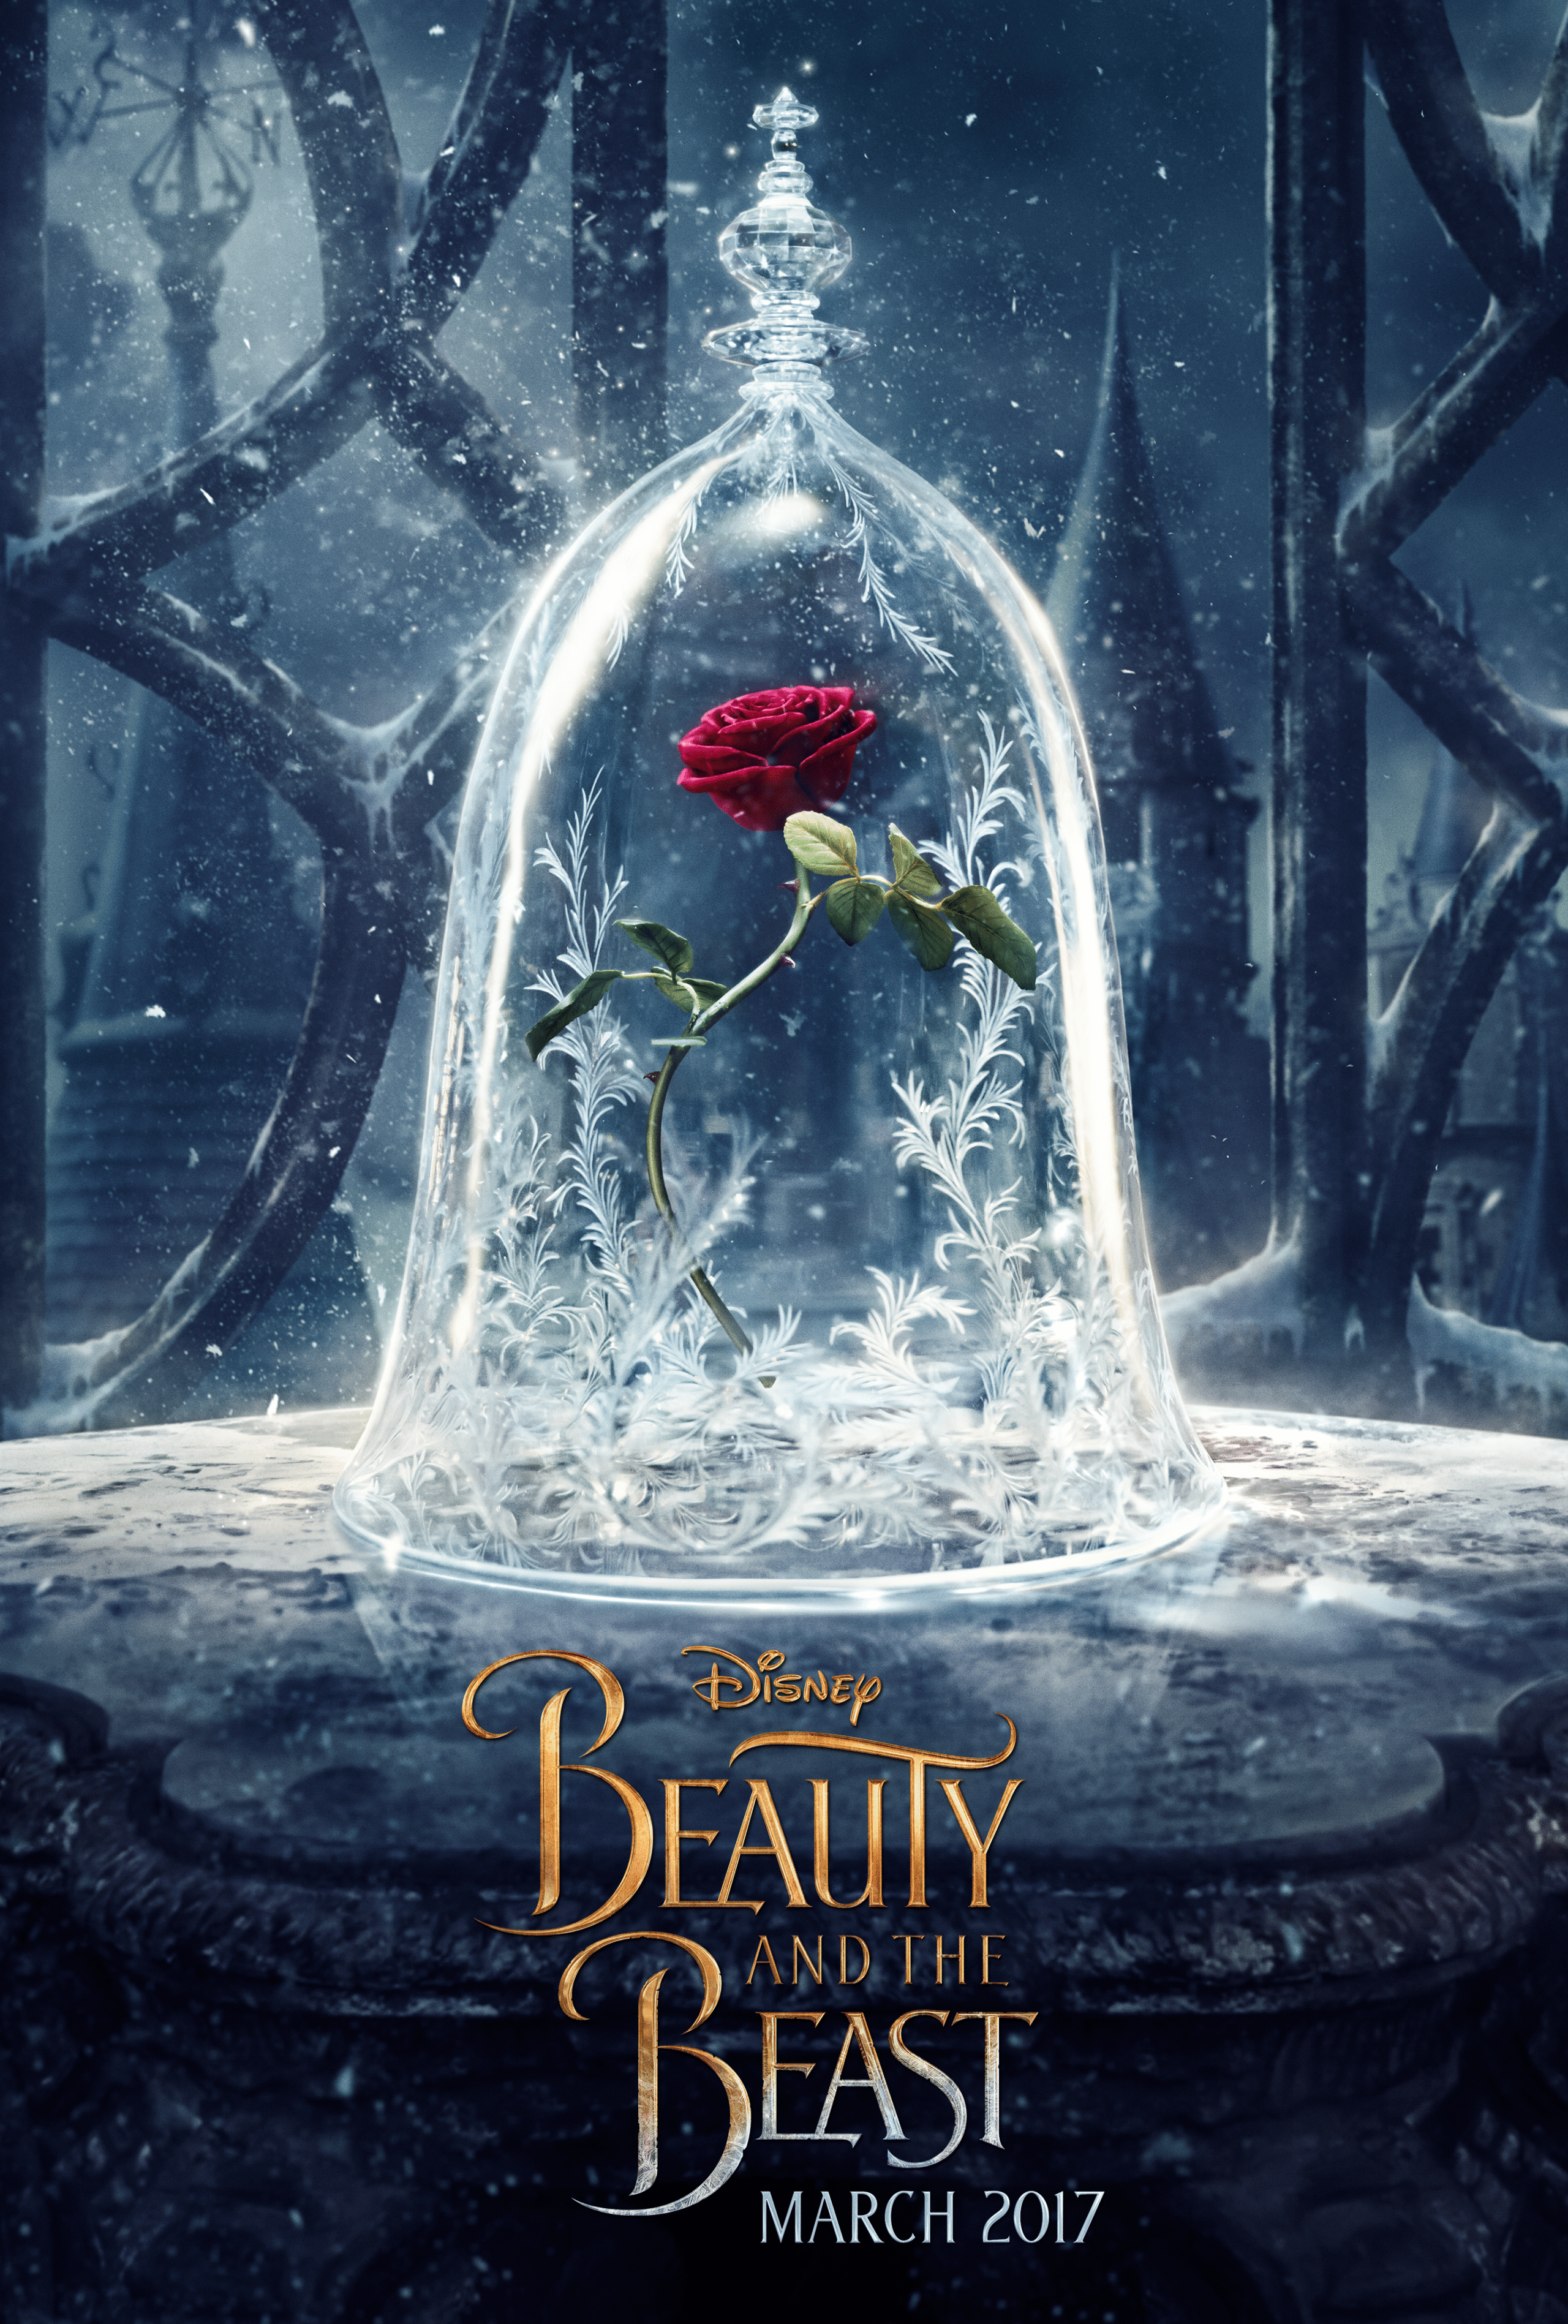 Disney's Beauty and the Beast Teaser Poster